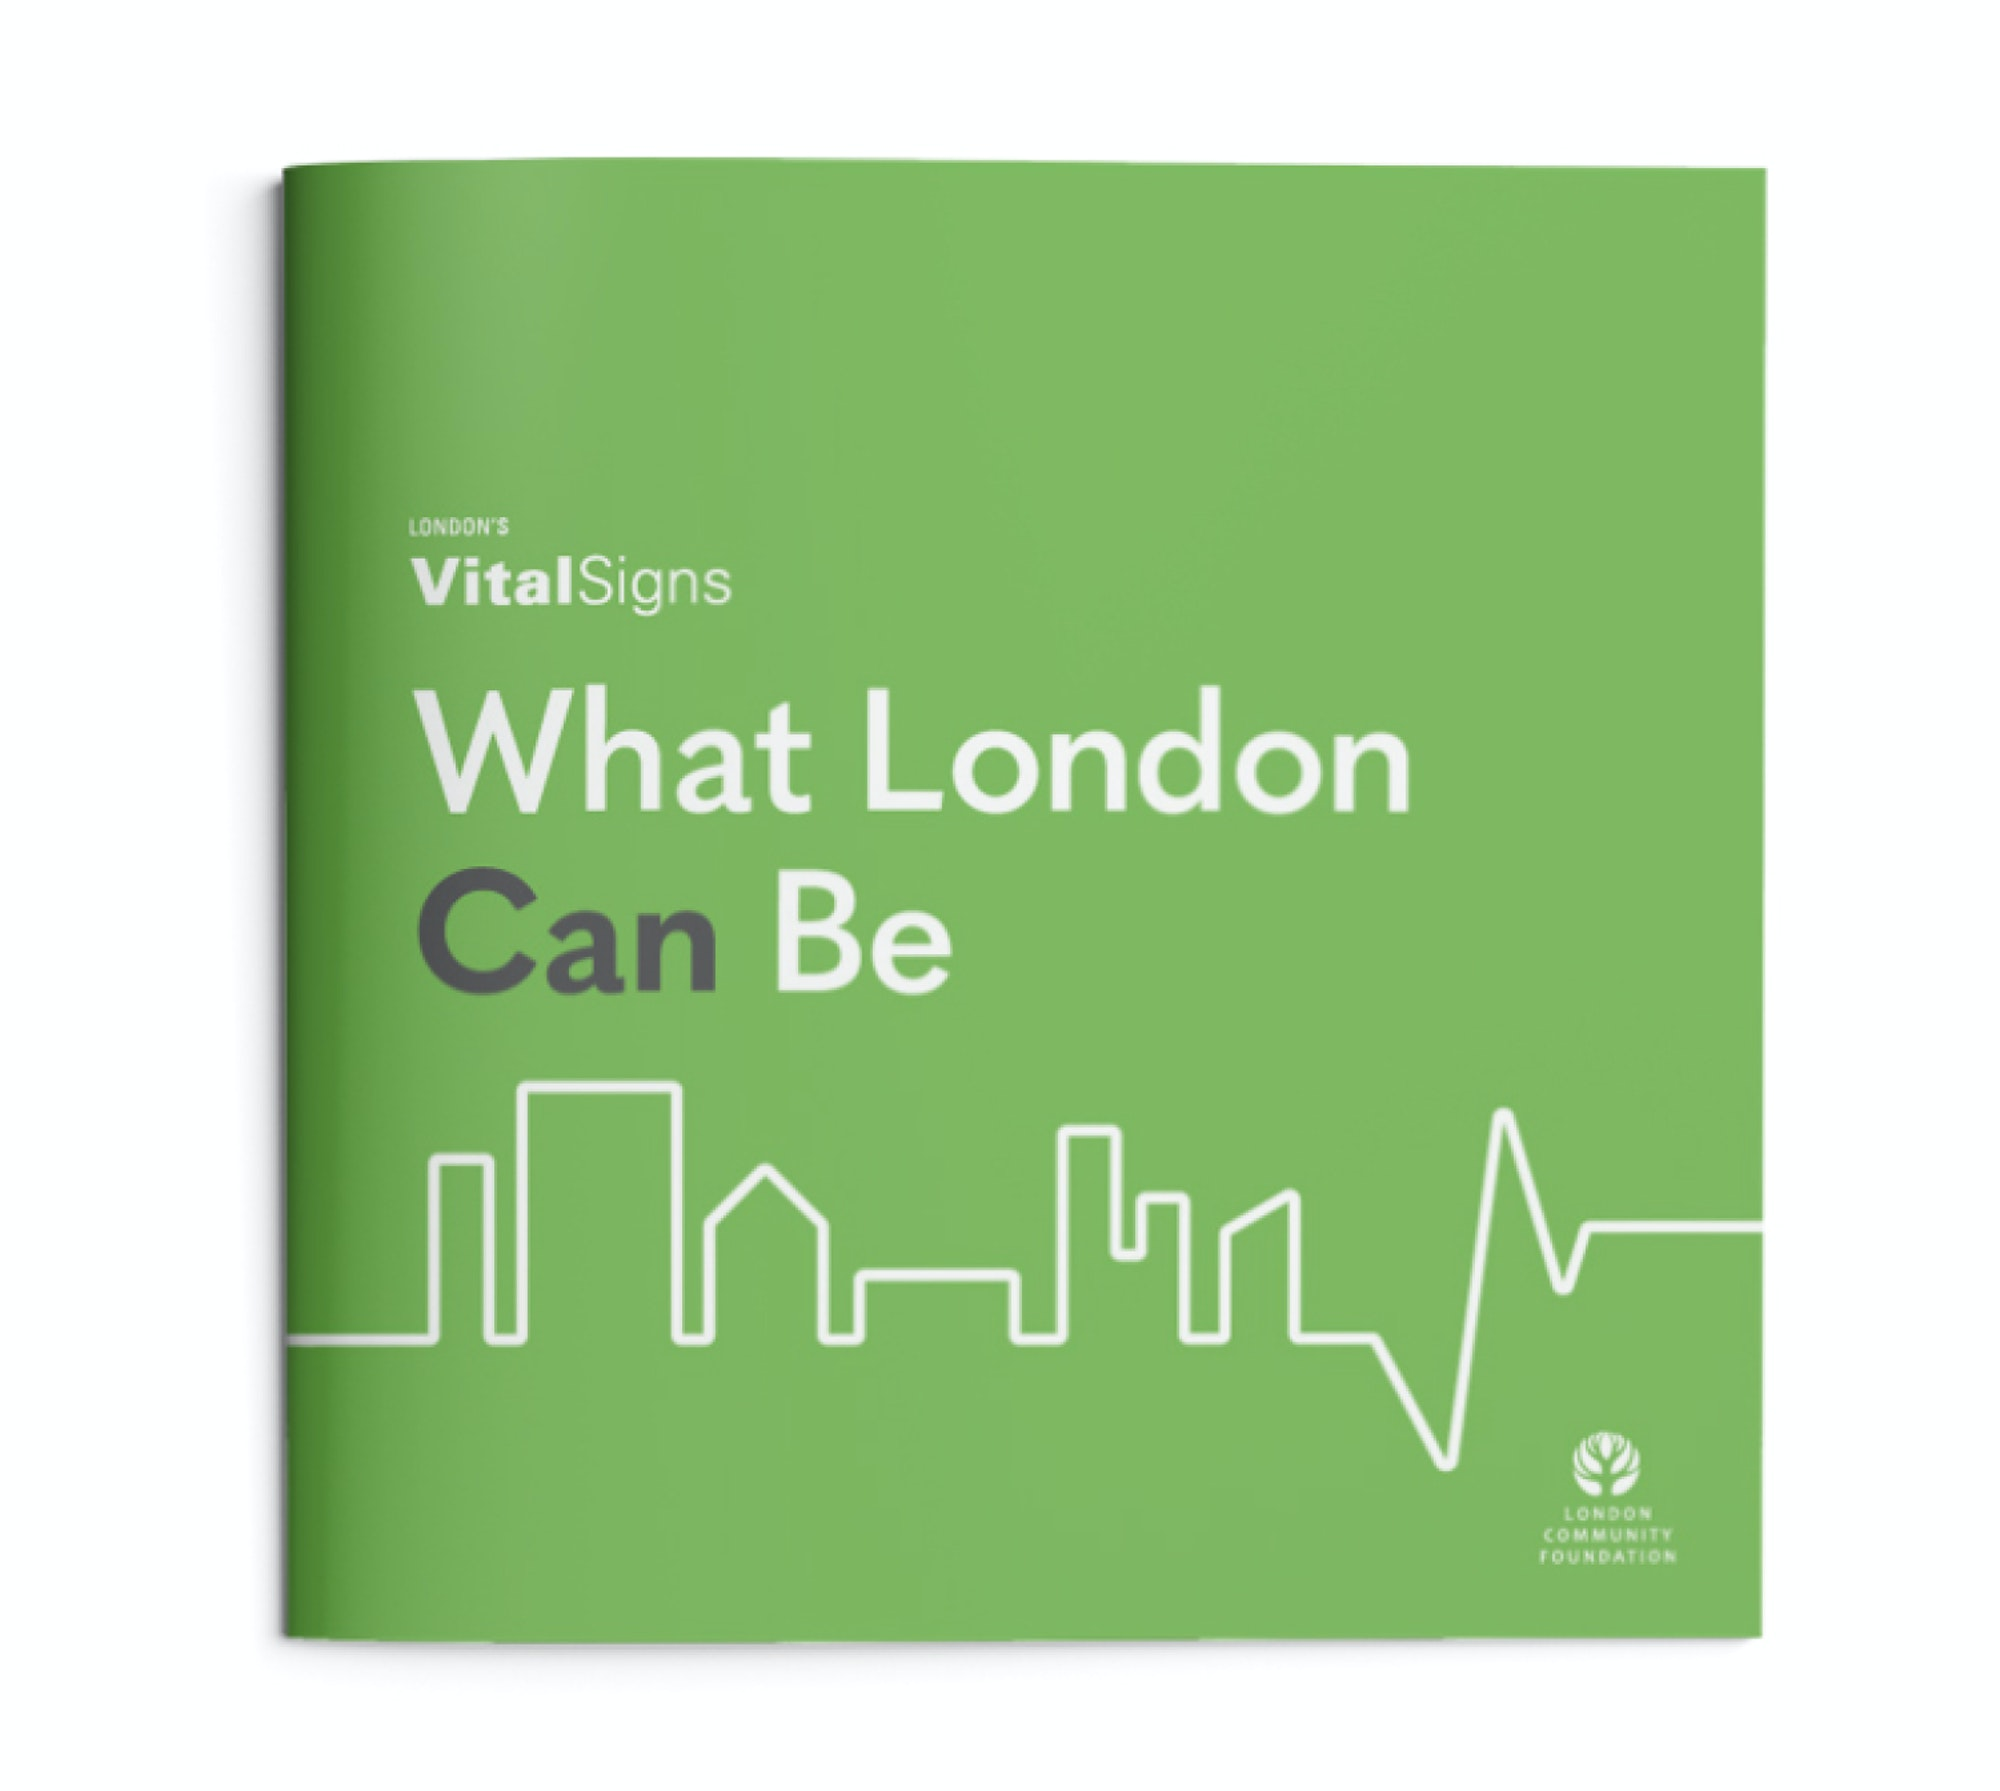 The front cover of the London Community Foundation's 2018 Vital Signs report